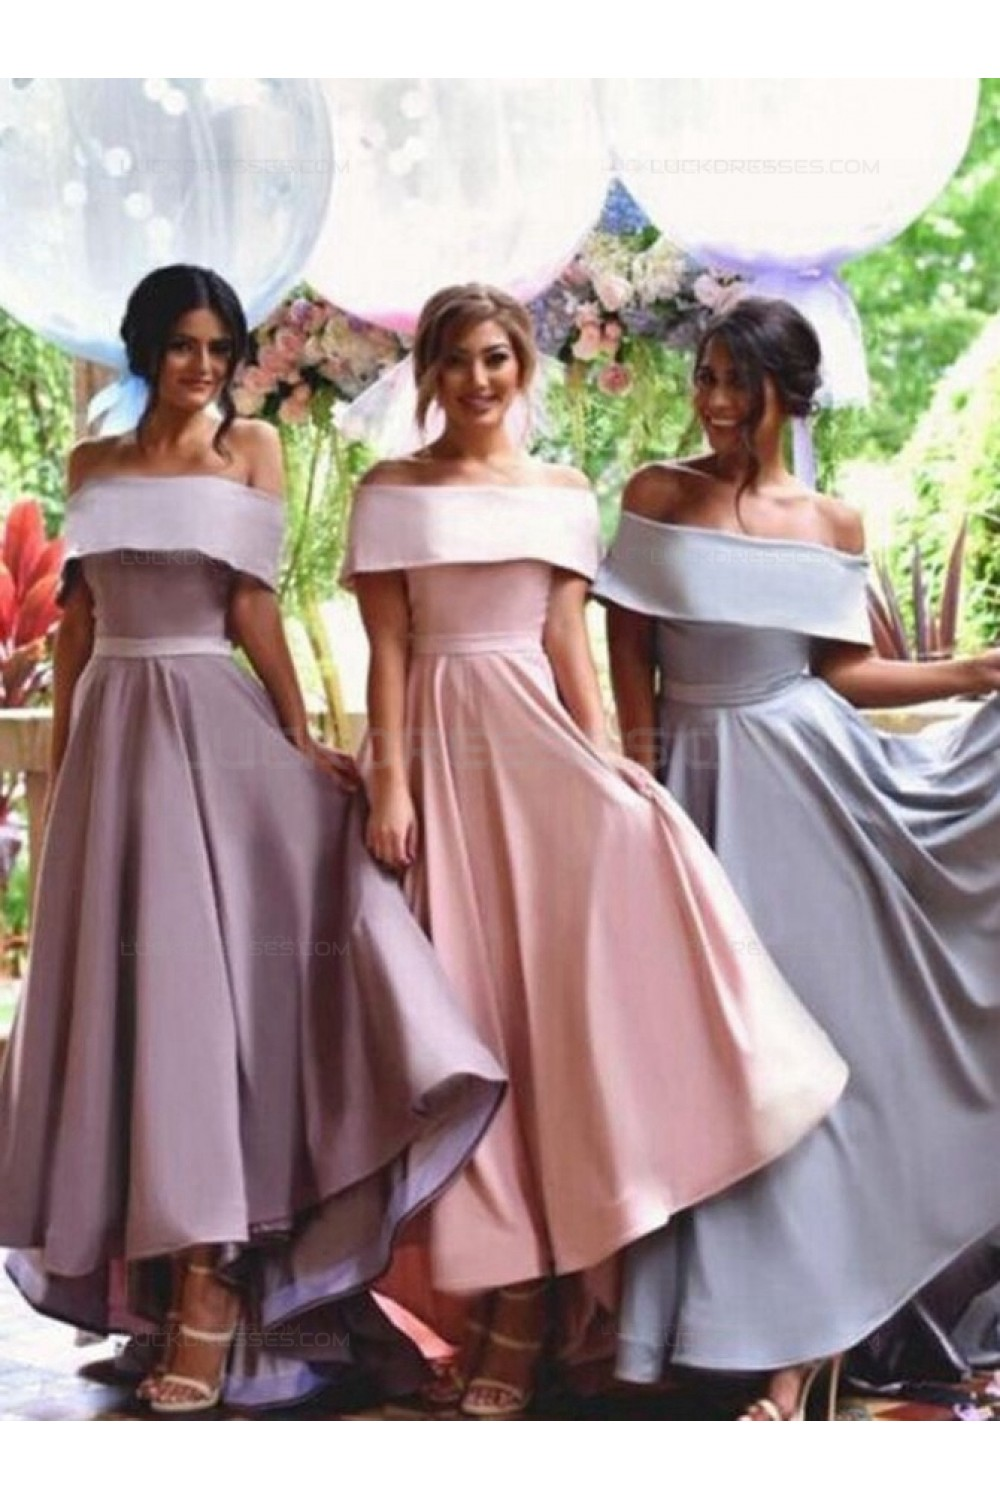 dd7f767da0ce0 A-Line Off-the-Shoulder High Low Wedding Party Dresses Bridesmaid ...